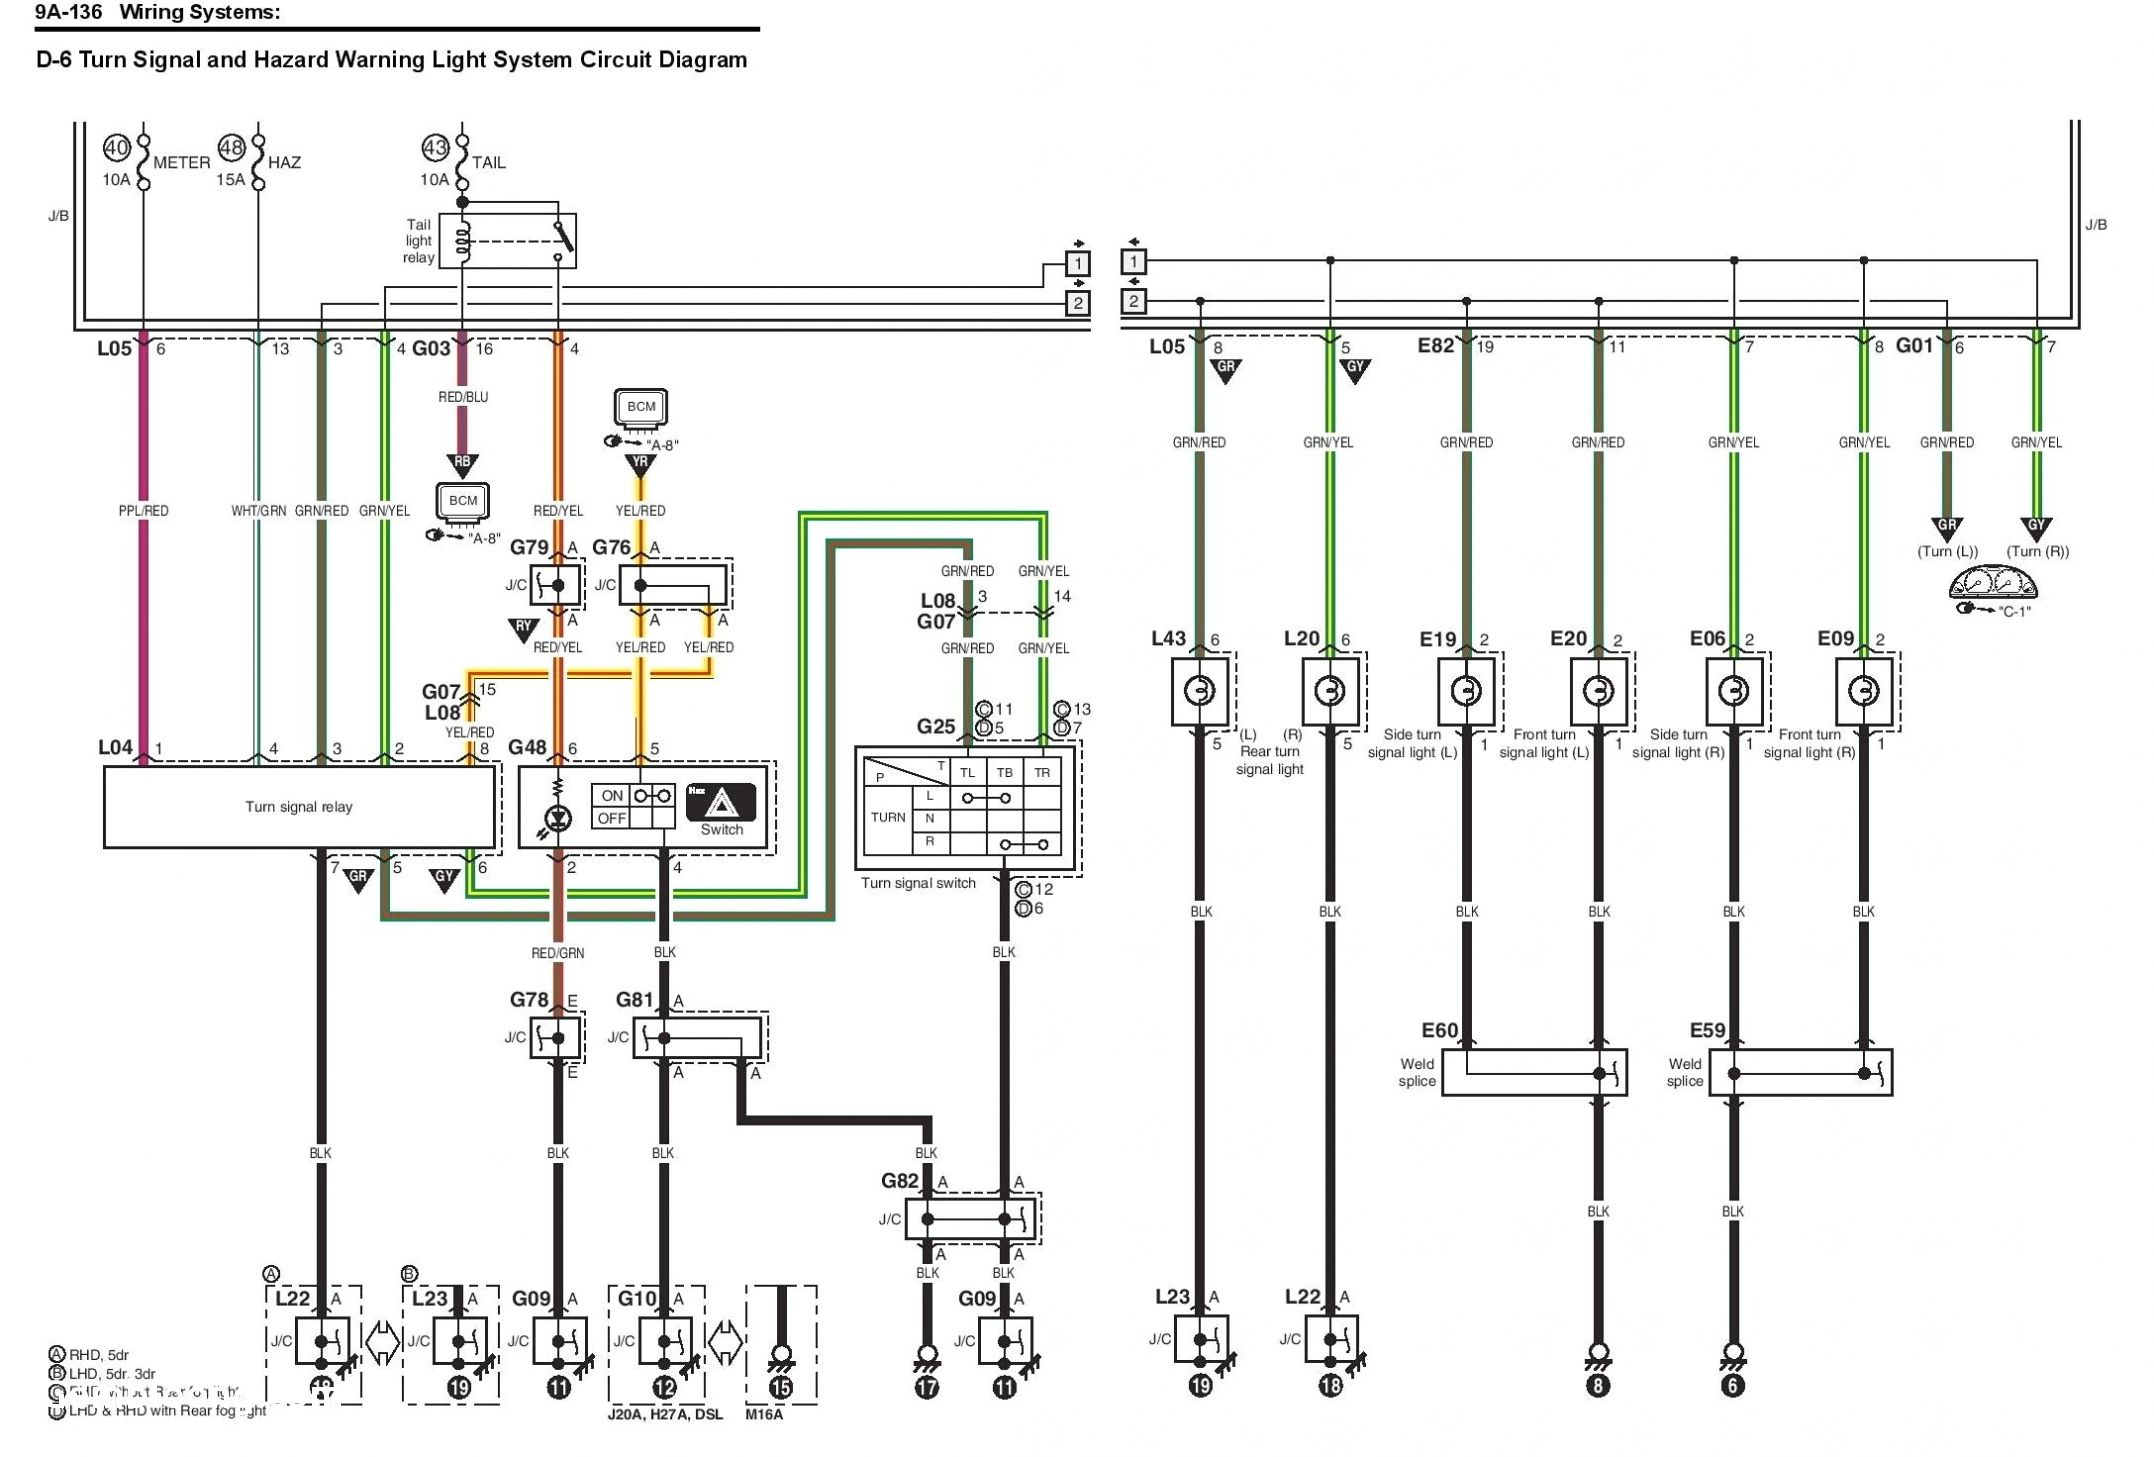 2 pin relay diagram, 5 pin 12v relay diagram, 9 pin relay diagram, 10 pin relay diagram, 6 pin relay diagram, 3 pin relay diagram, 7 pin relay diagram, 12 pin relay diagram, idec relays diagram, well pump pressure switch diagram, 14 pin relay diagram, 4 pin relay diagram, 8 pin power, ac condenser fan motor wiring diagram, 11 pin relay diagram, on 8 pin relay wire diagram